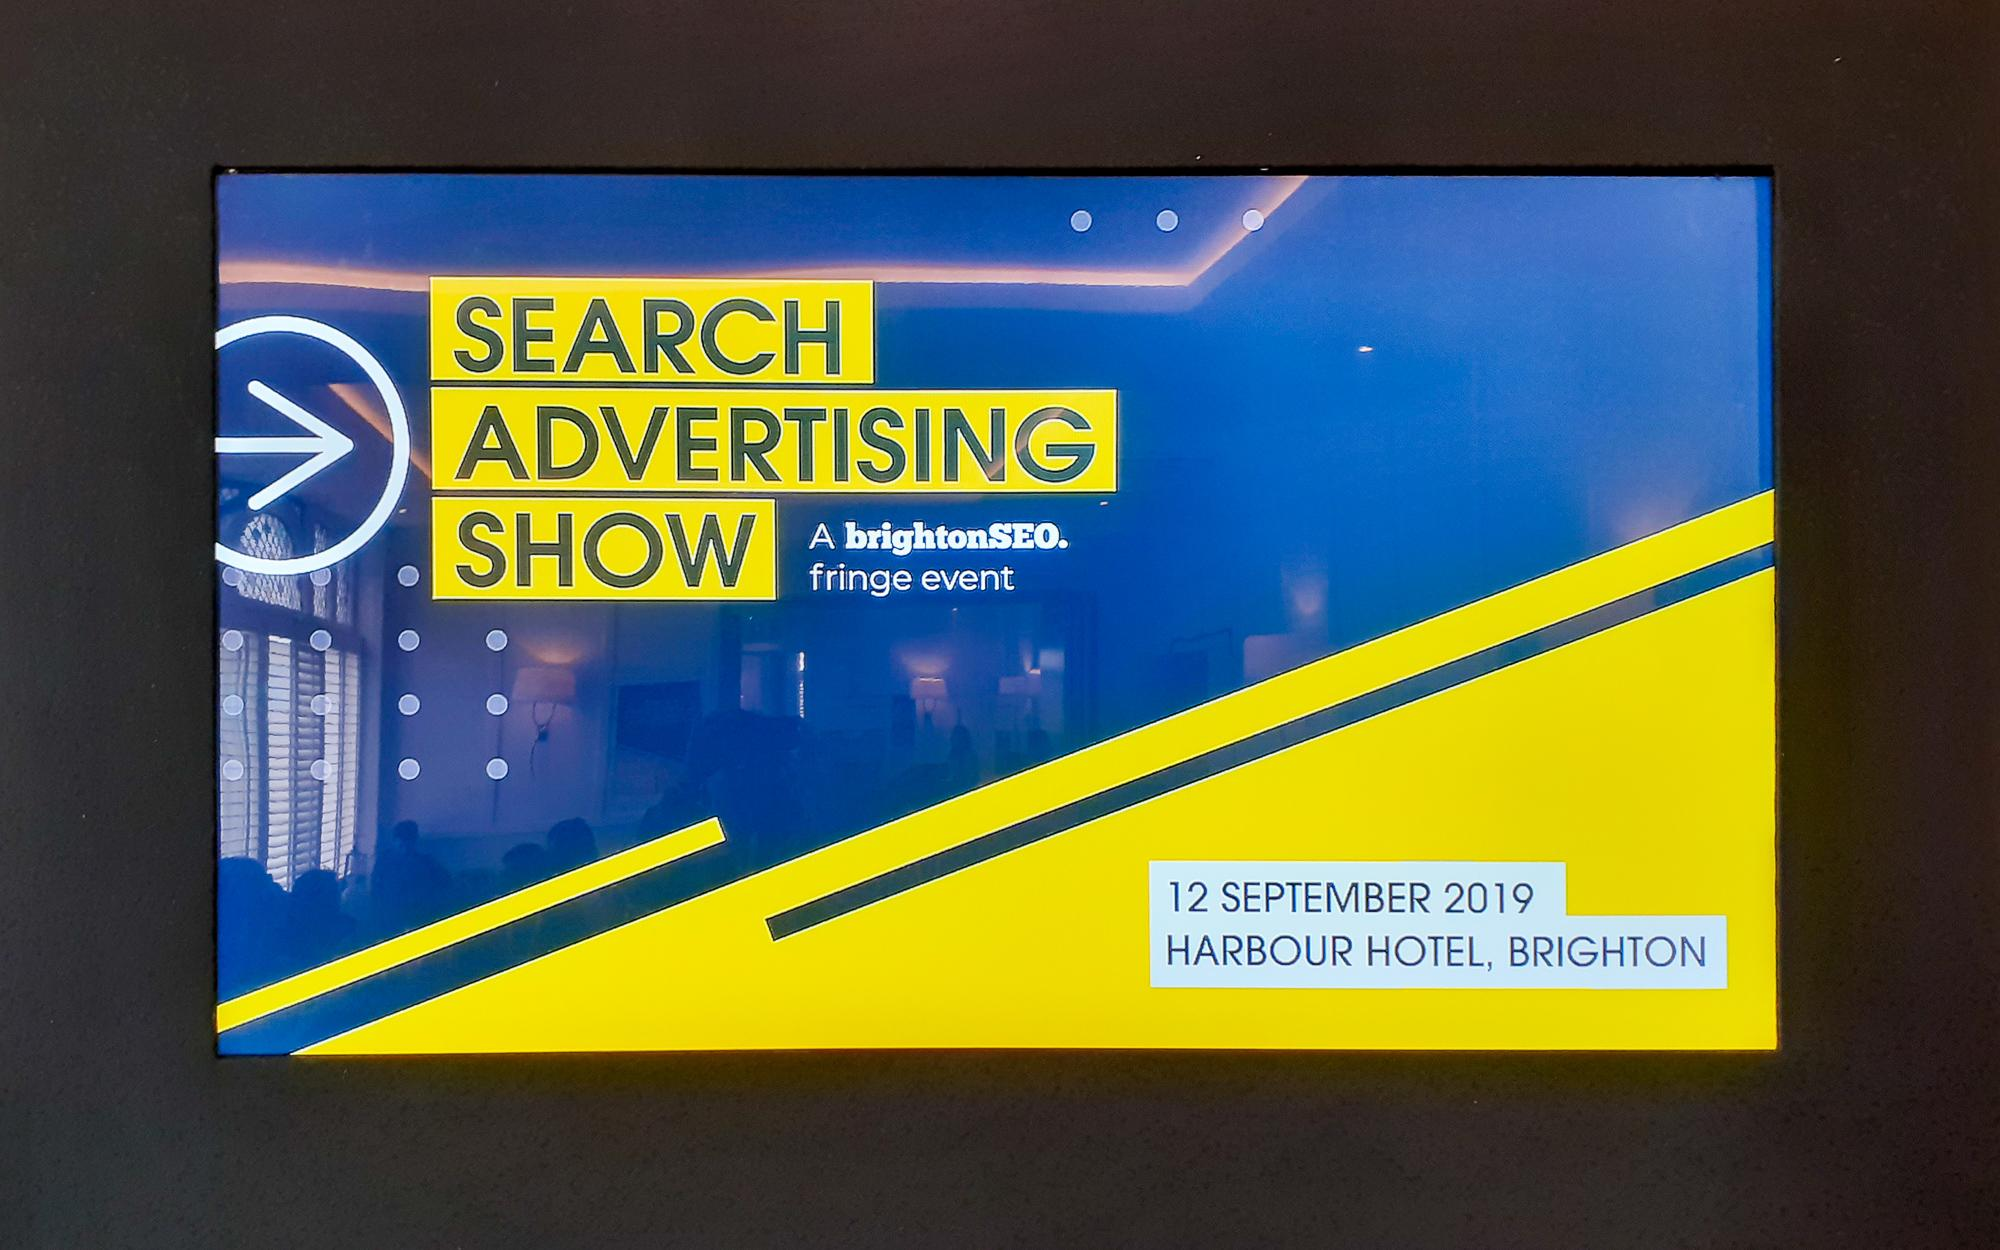 Search Advertising Show, een event in de marge van Brighton SEO 2019